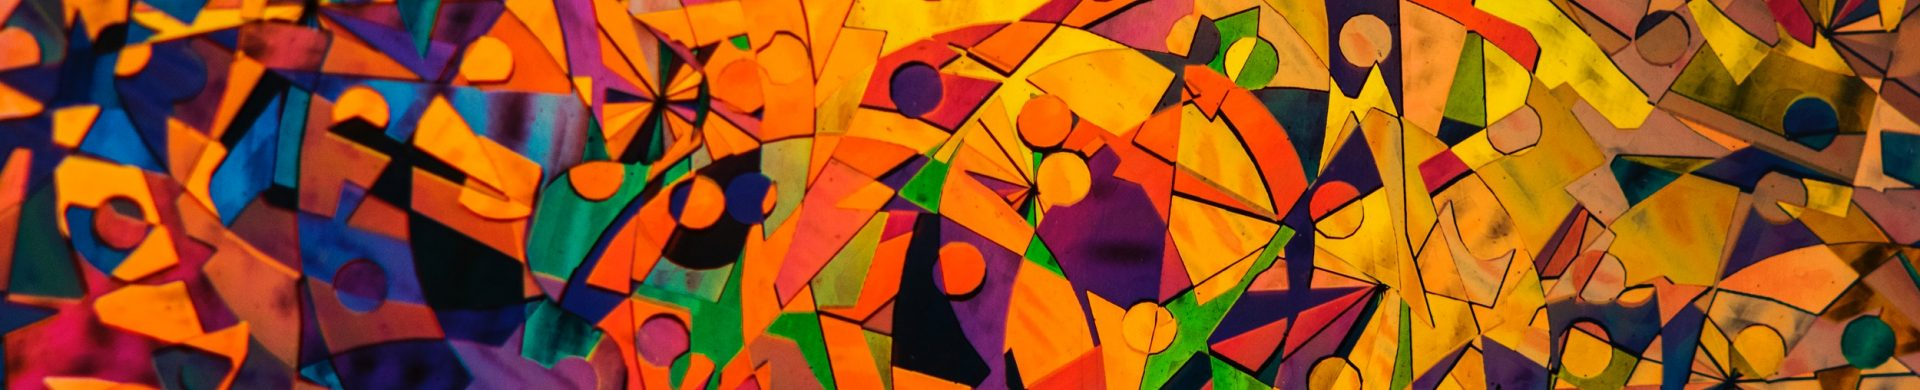 Abstract art in predominantly orange, with a bit of purple and green scattered throughout.